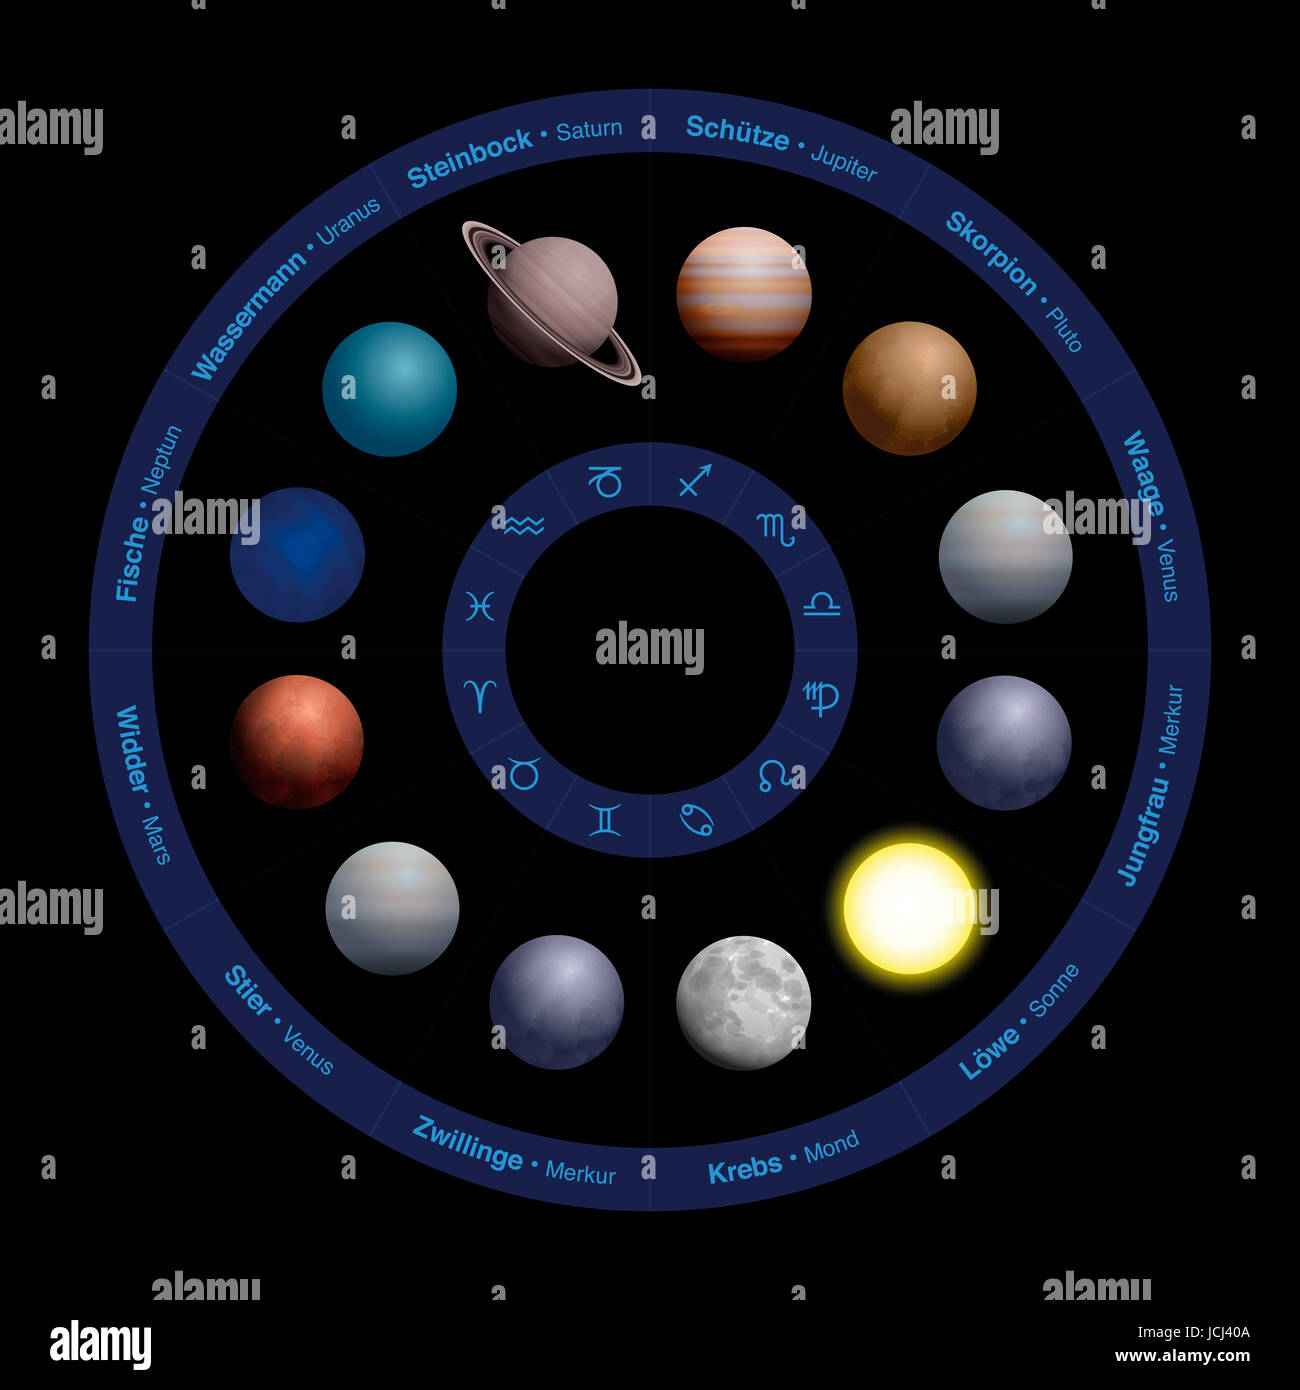 Planets of astrology, realistic design, in zodiac circle - with names GERMAN LANGUAGE in the outer circle and symbols - Stock Image